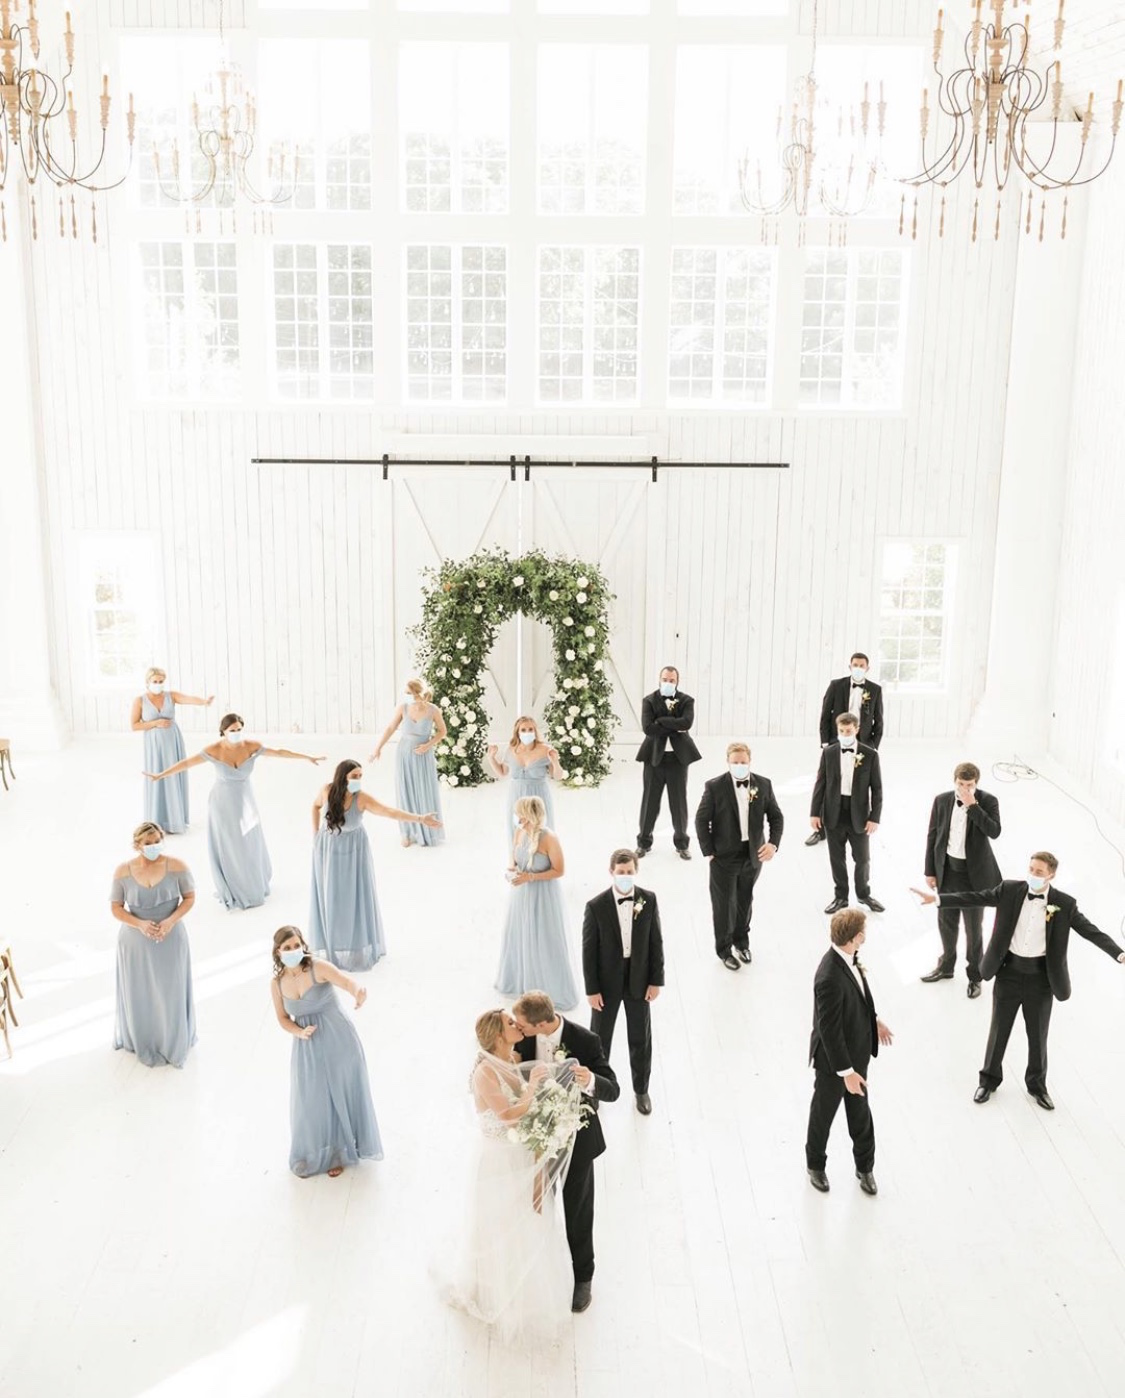 Socially distanced wedding during Covid-19